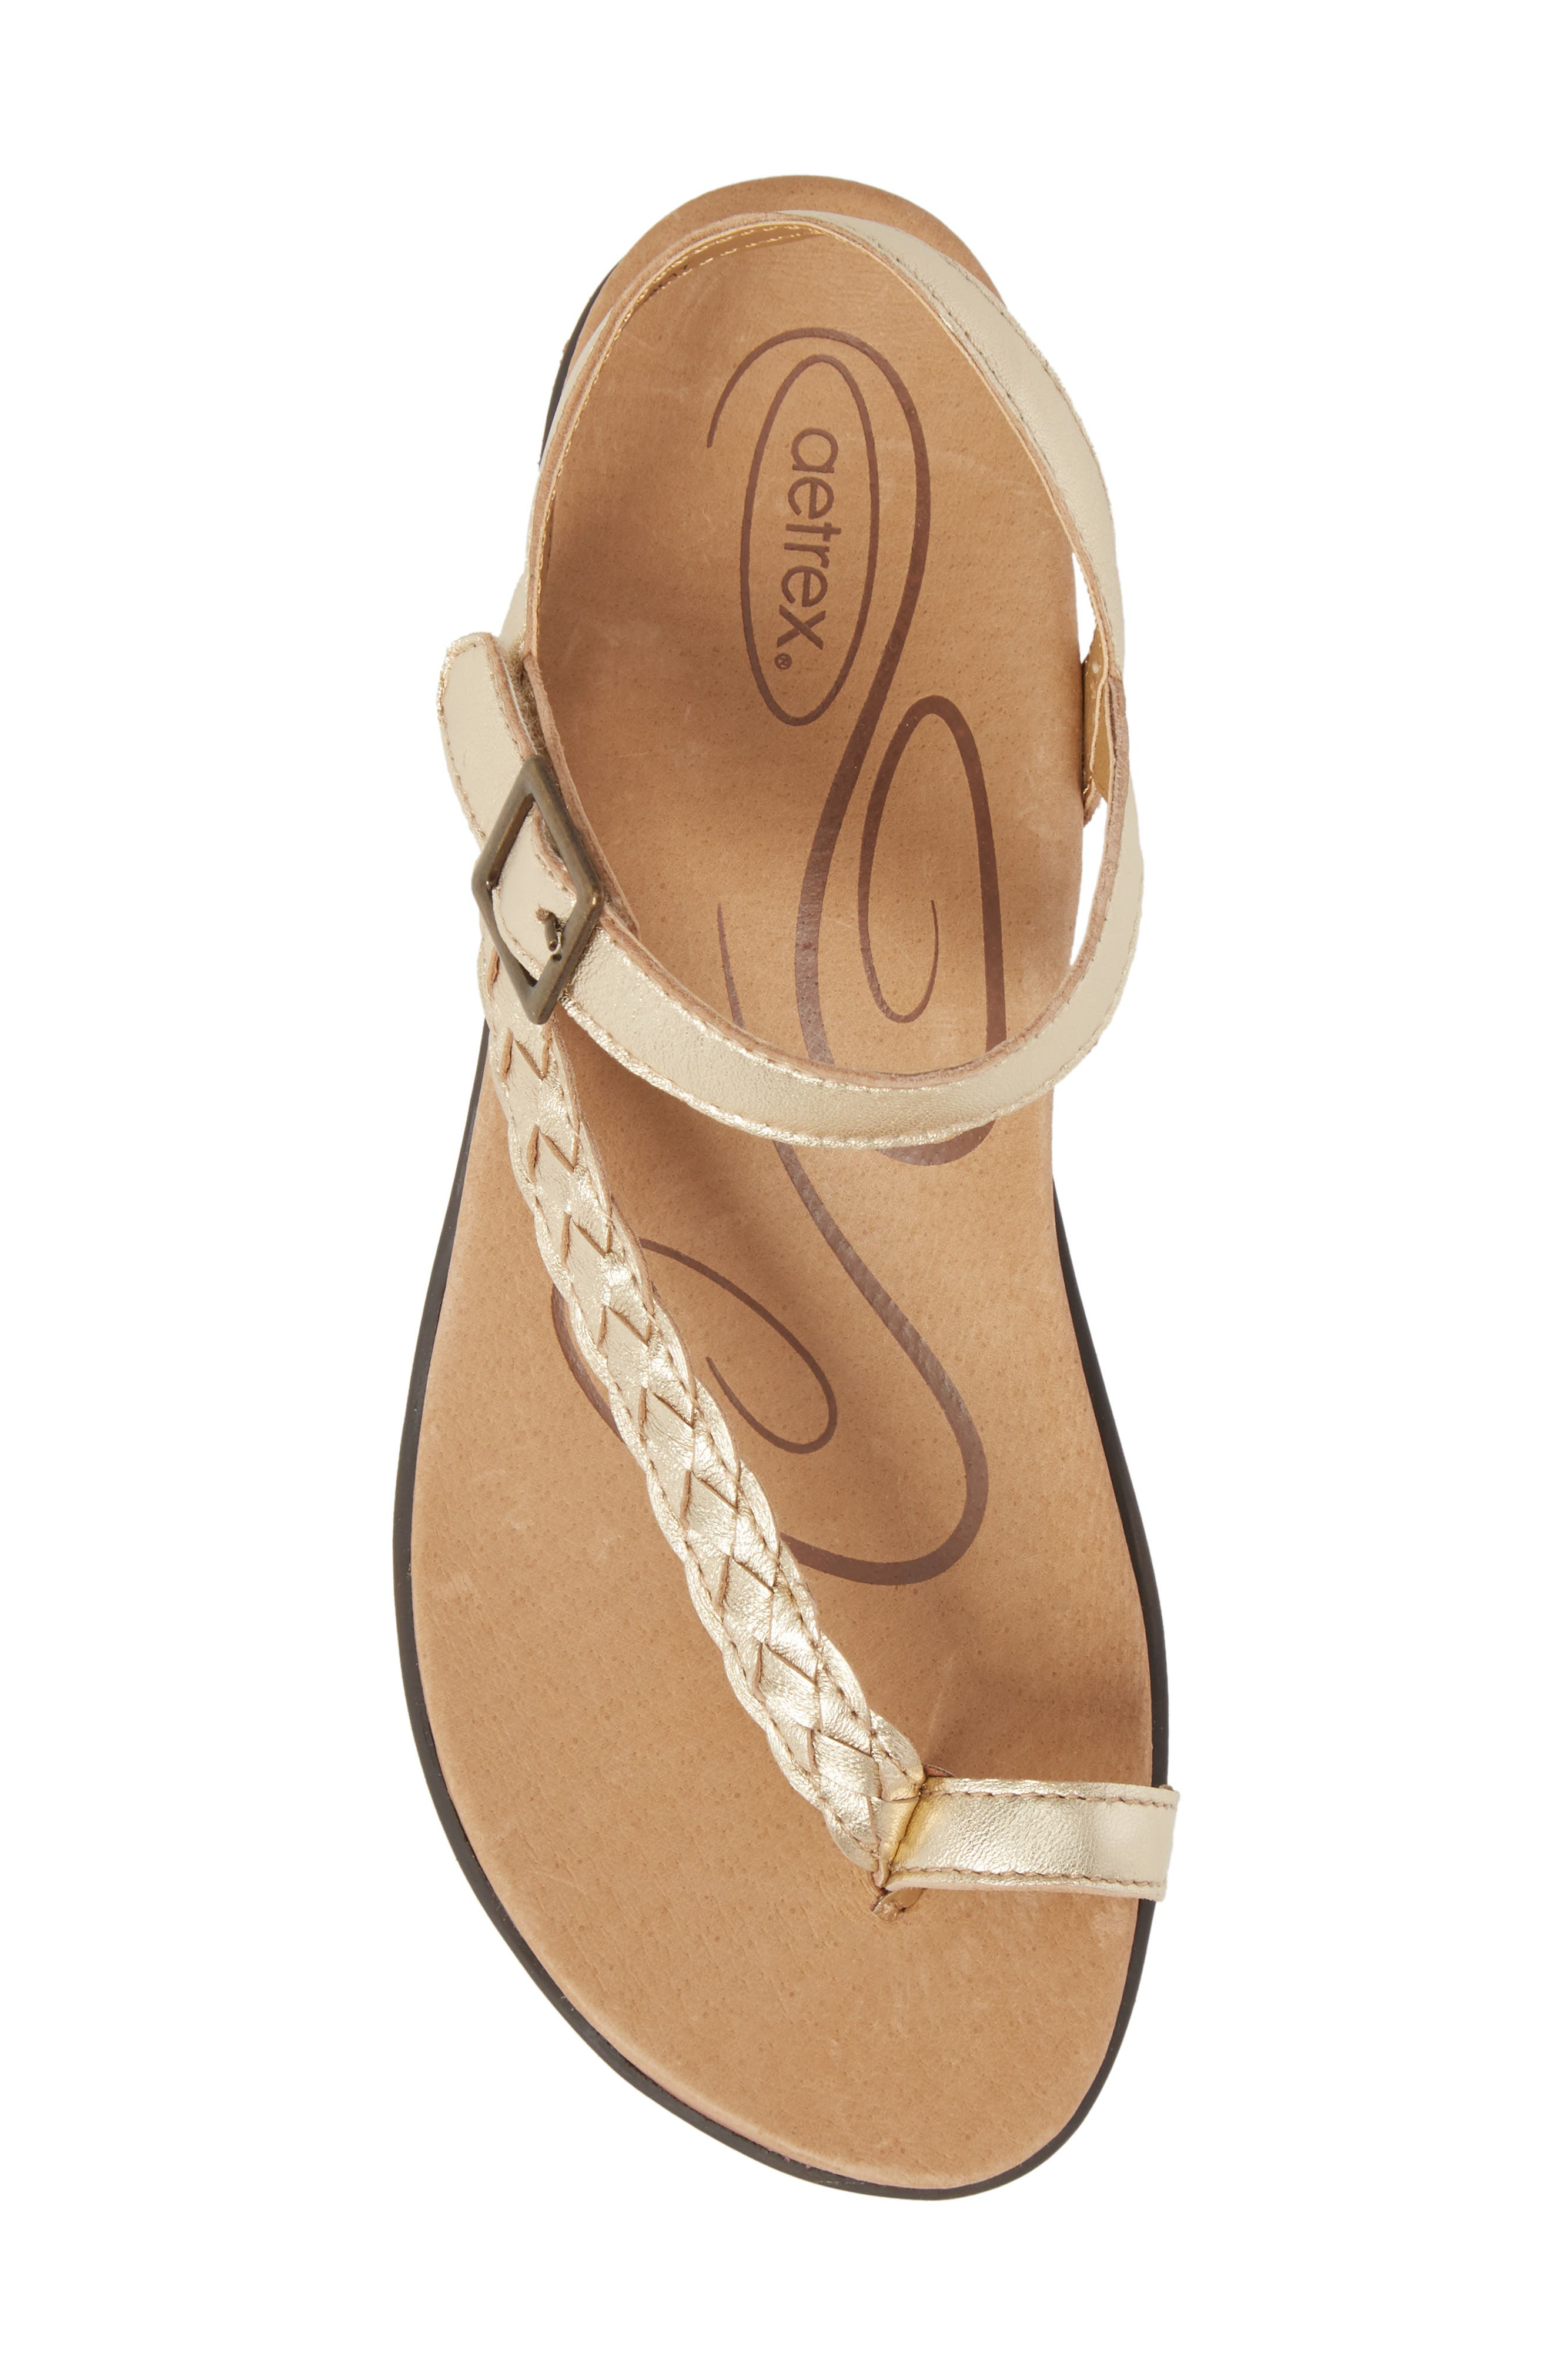 Evie Braided Strap Sandal,                             Alternate thumbnail 5, color,                             Gold Leather